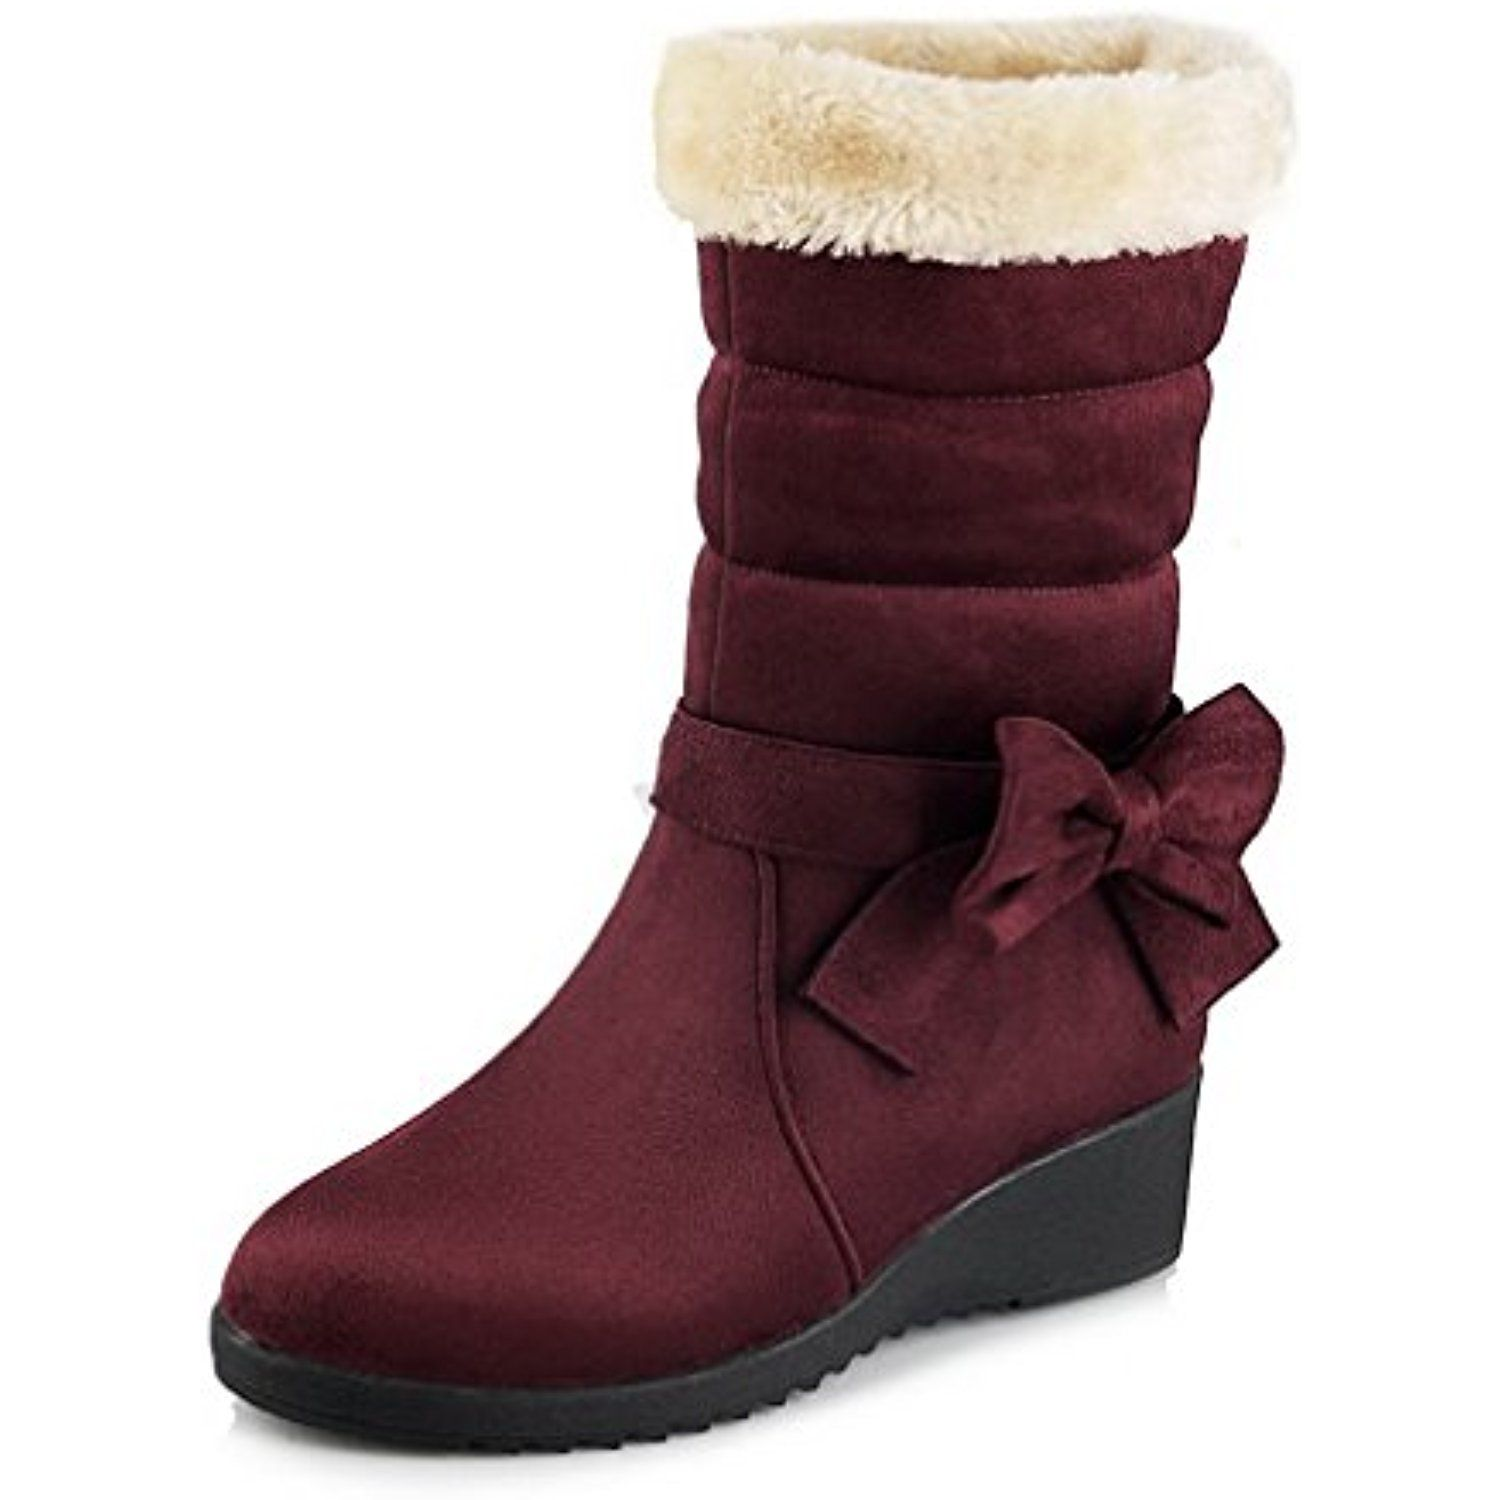 Women's High-Heels Frosted Low-top Solid Pull-on Boots